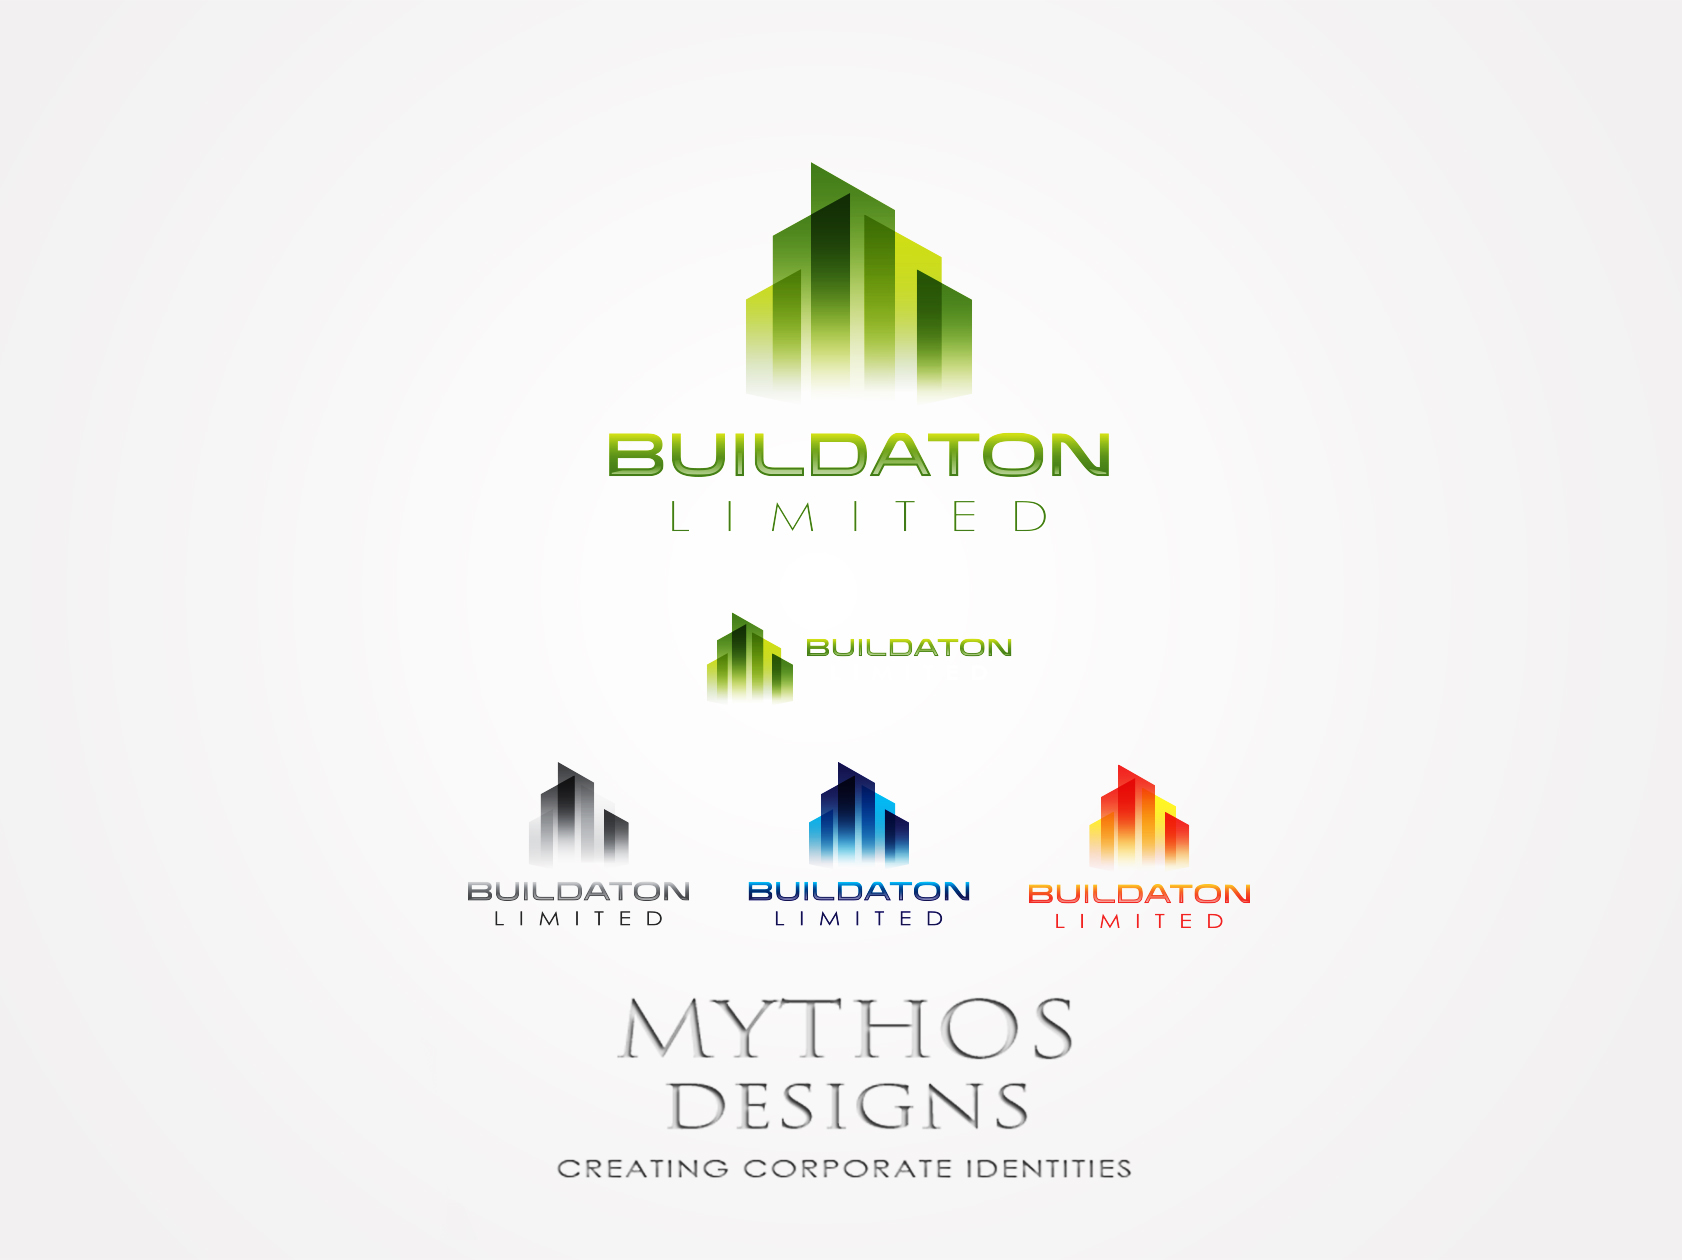 Logo Design by Mythos Designs - Entry No. 34 in the Logo Design Contest Artistic Logo Design for Buildaton Limited.